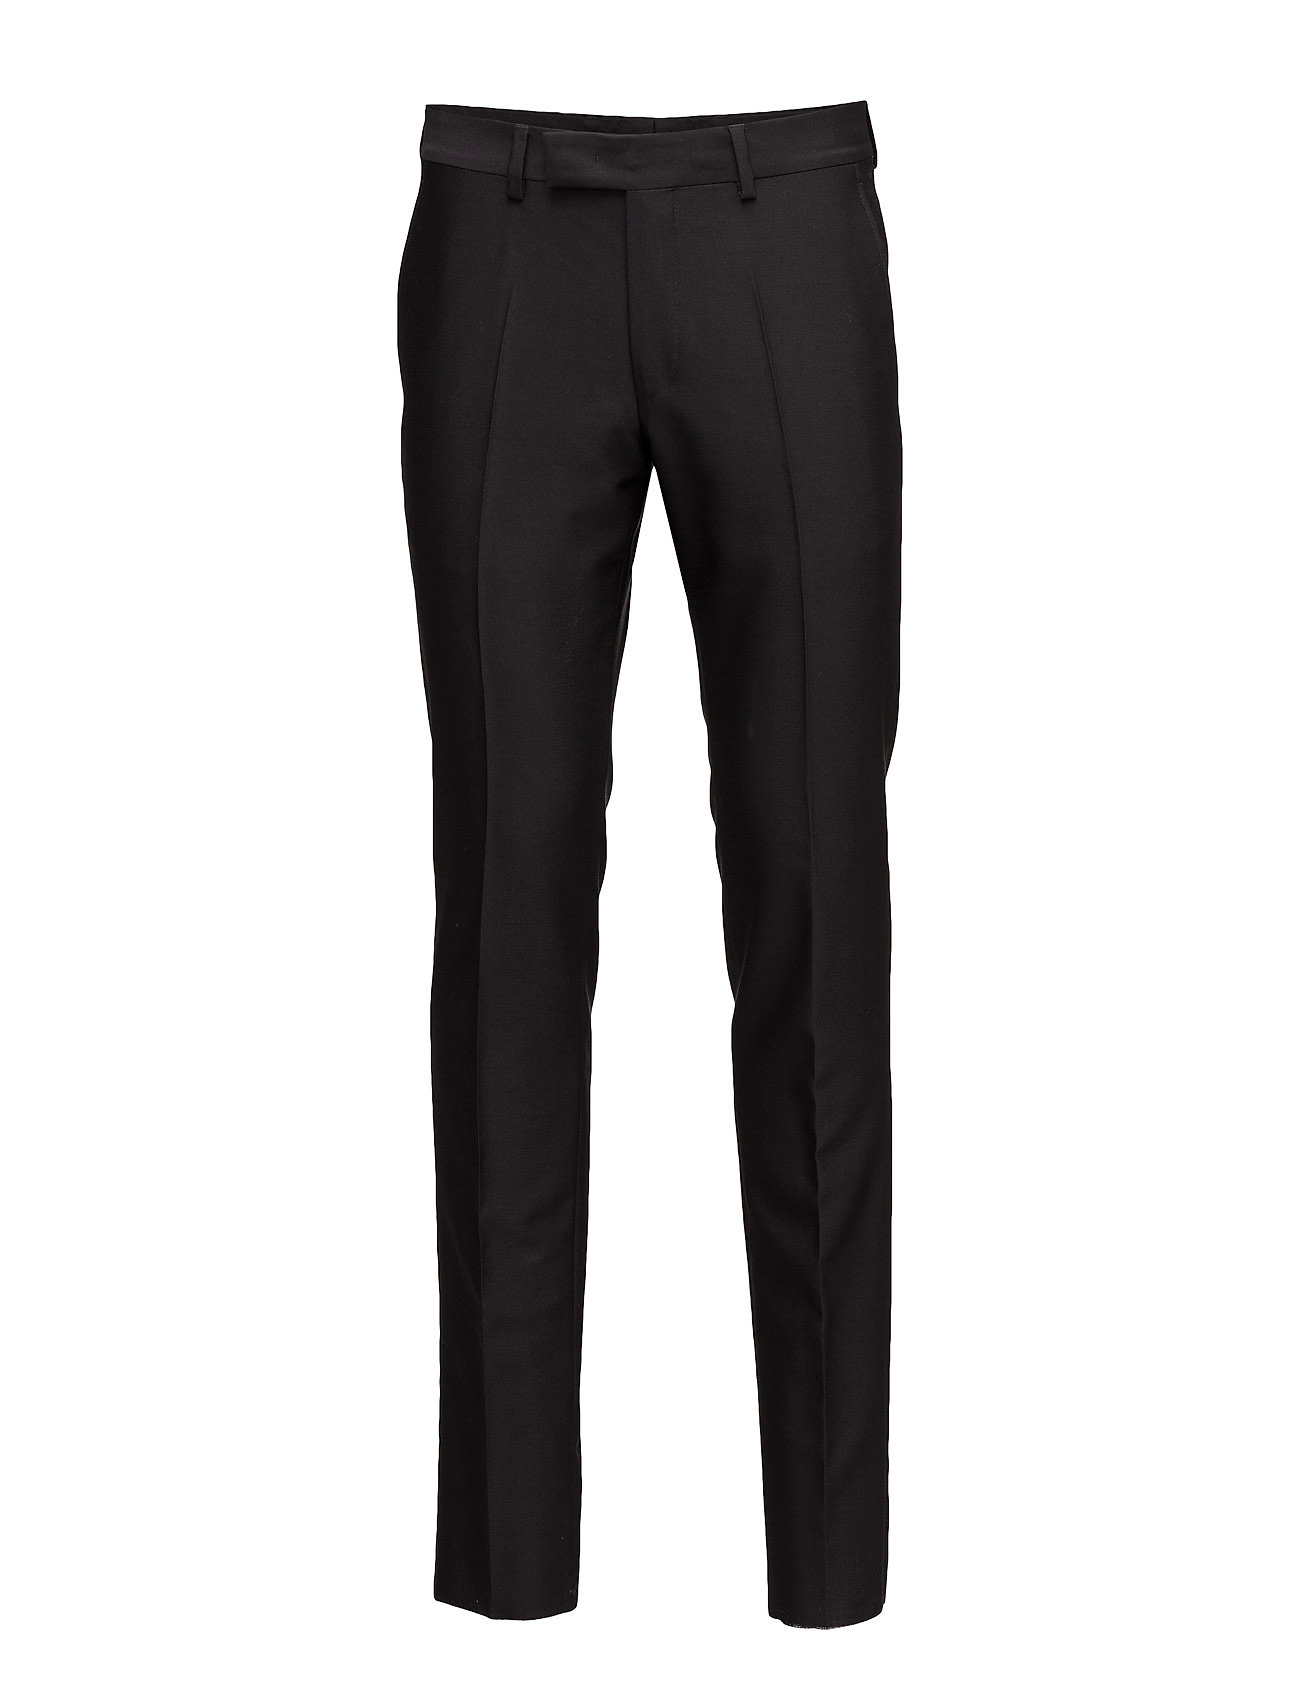 Lagerfeld TROUSER ROAD - 990-BLACK